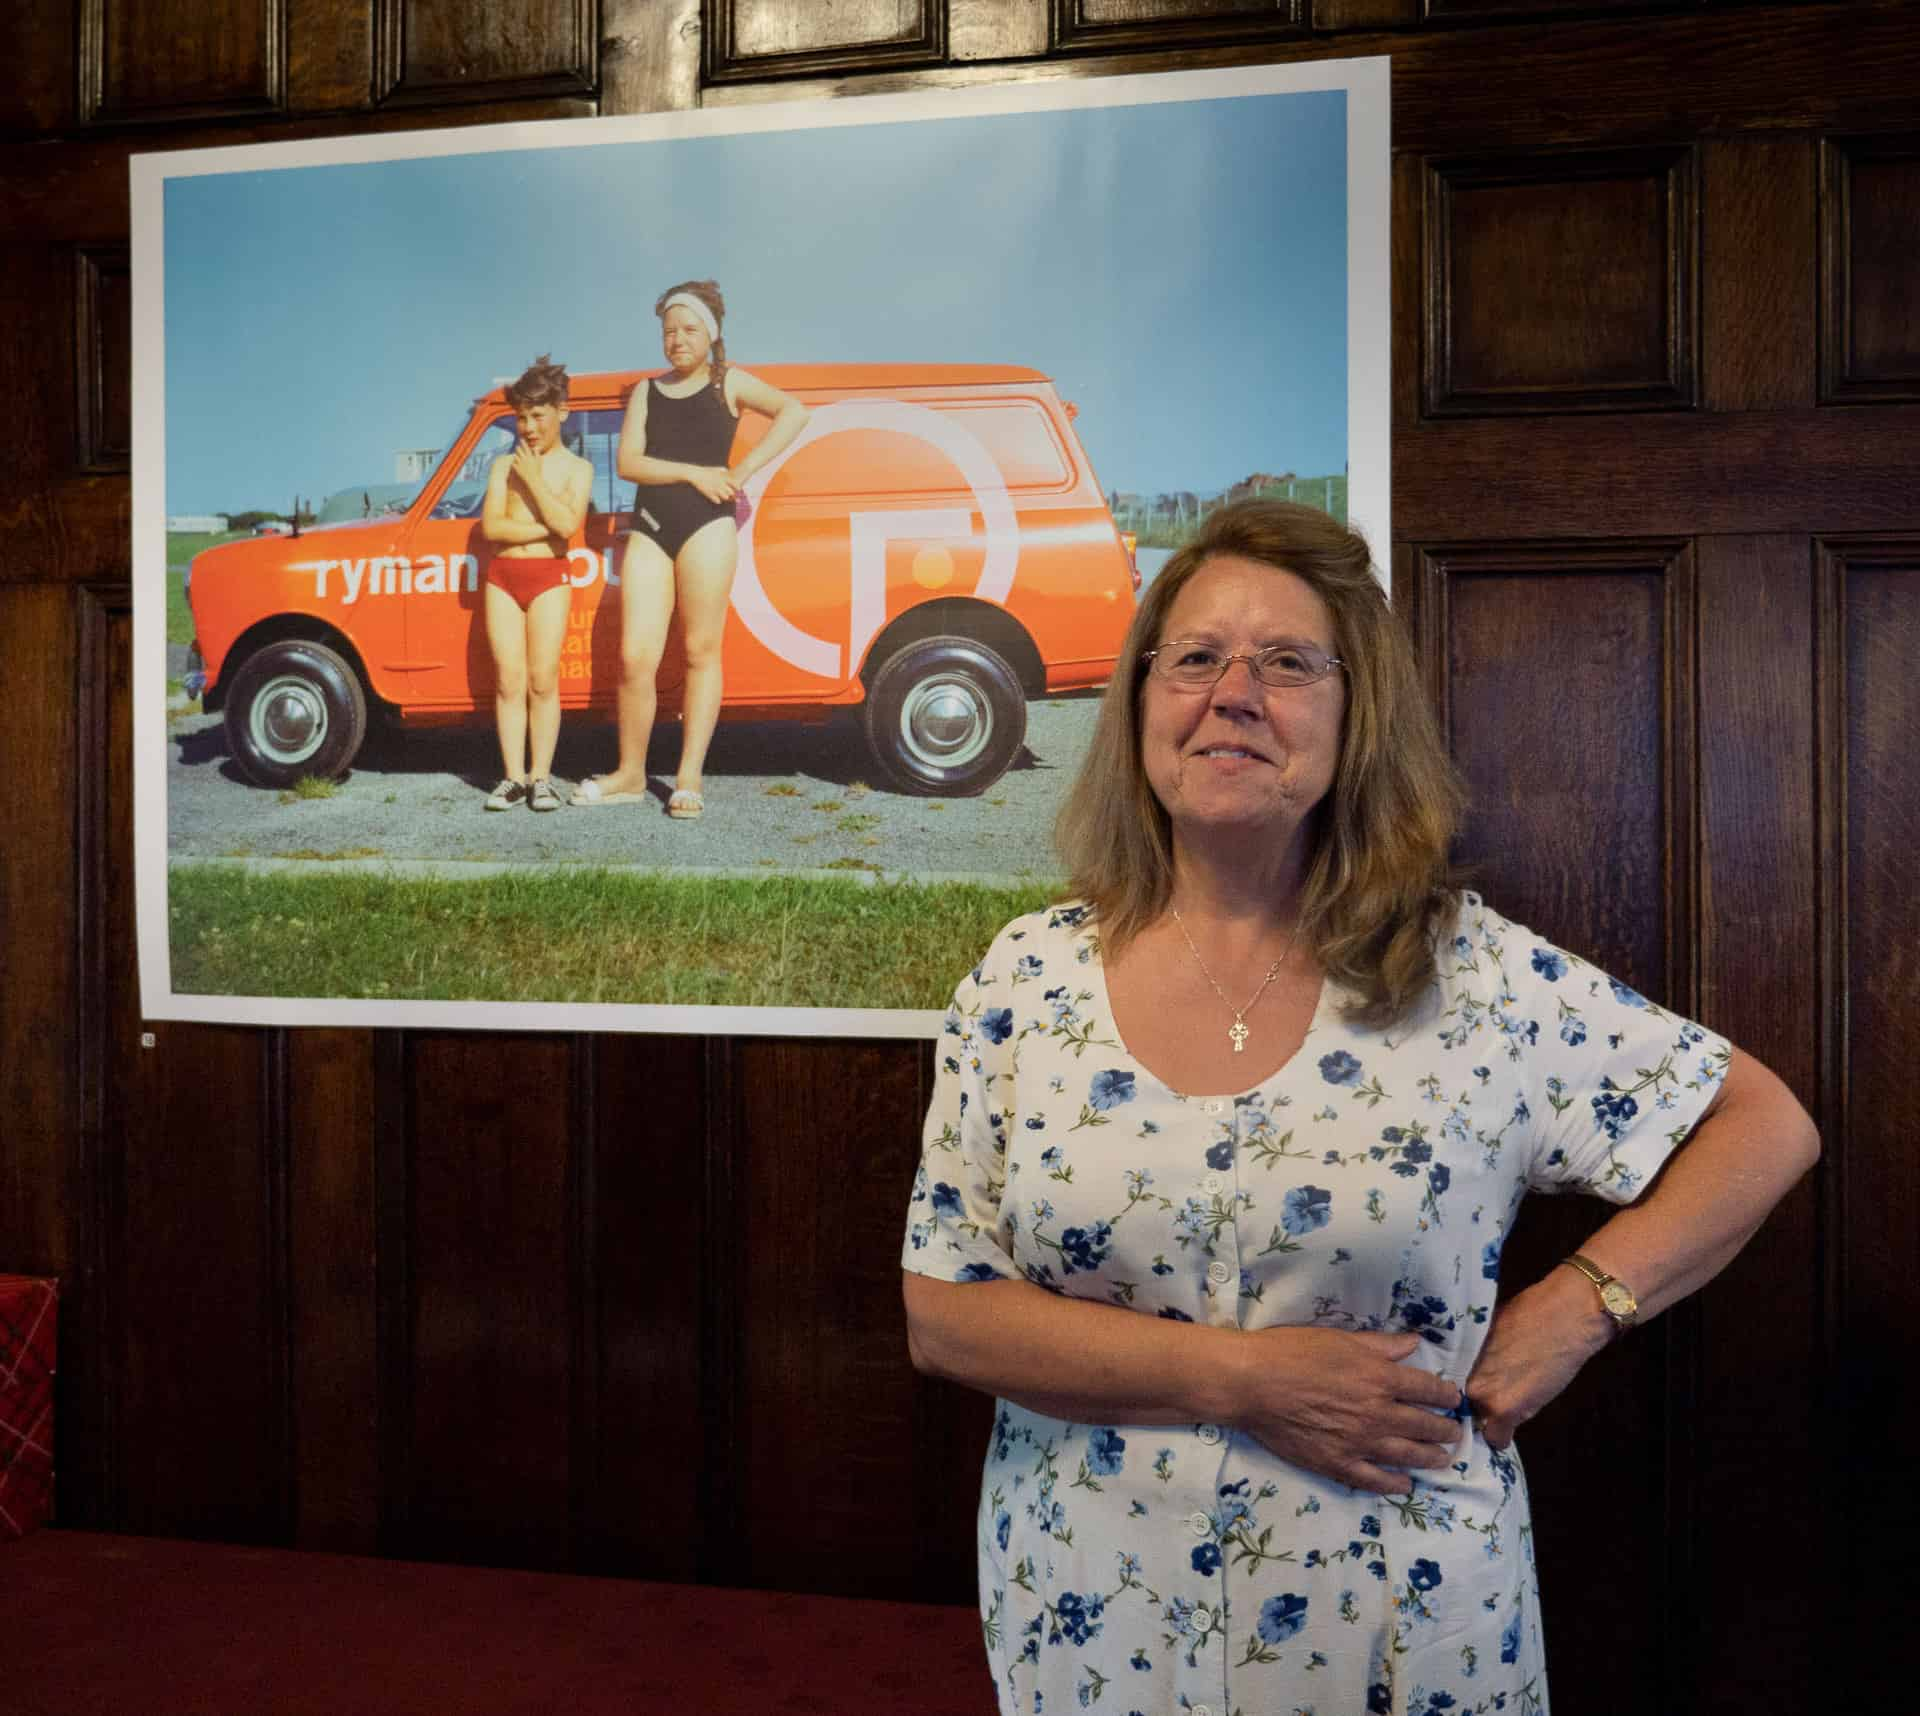 Cheryl Aston (nee Moss) stands in front of a photograph of herself taken by her father Ron Moss in 1967